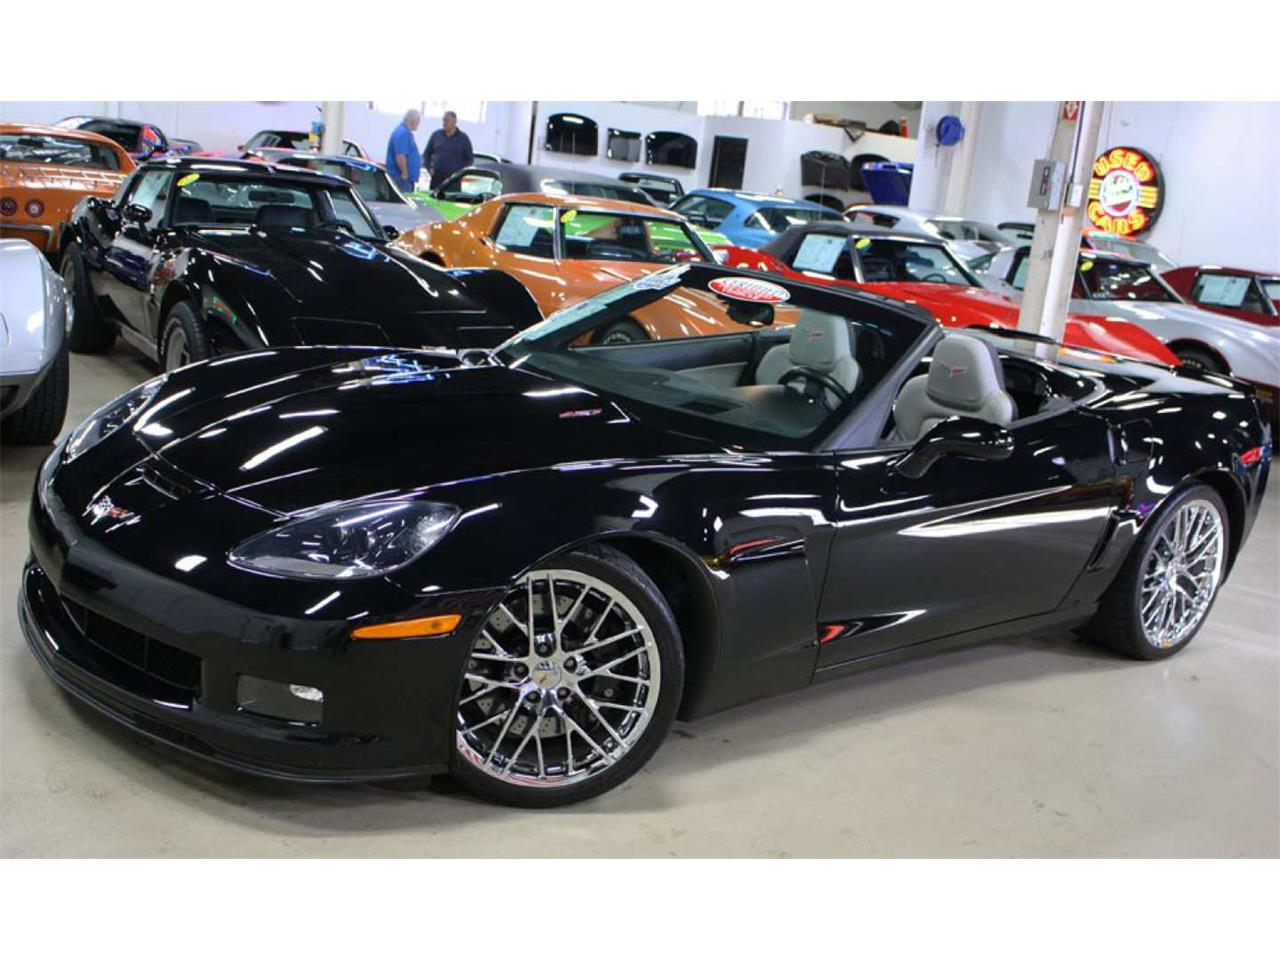 Large Picture of '13 Chevrolet Corvette located in Harvey Louisiana Auction Vehicle Offered by Vicari Auction - Q66G